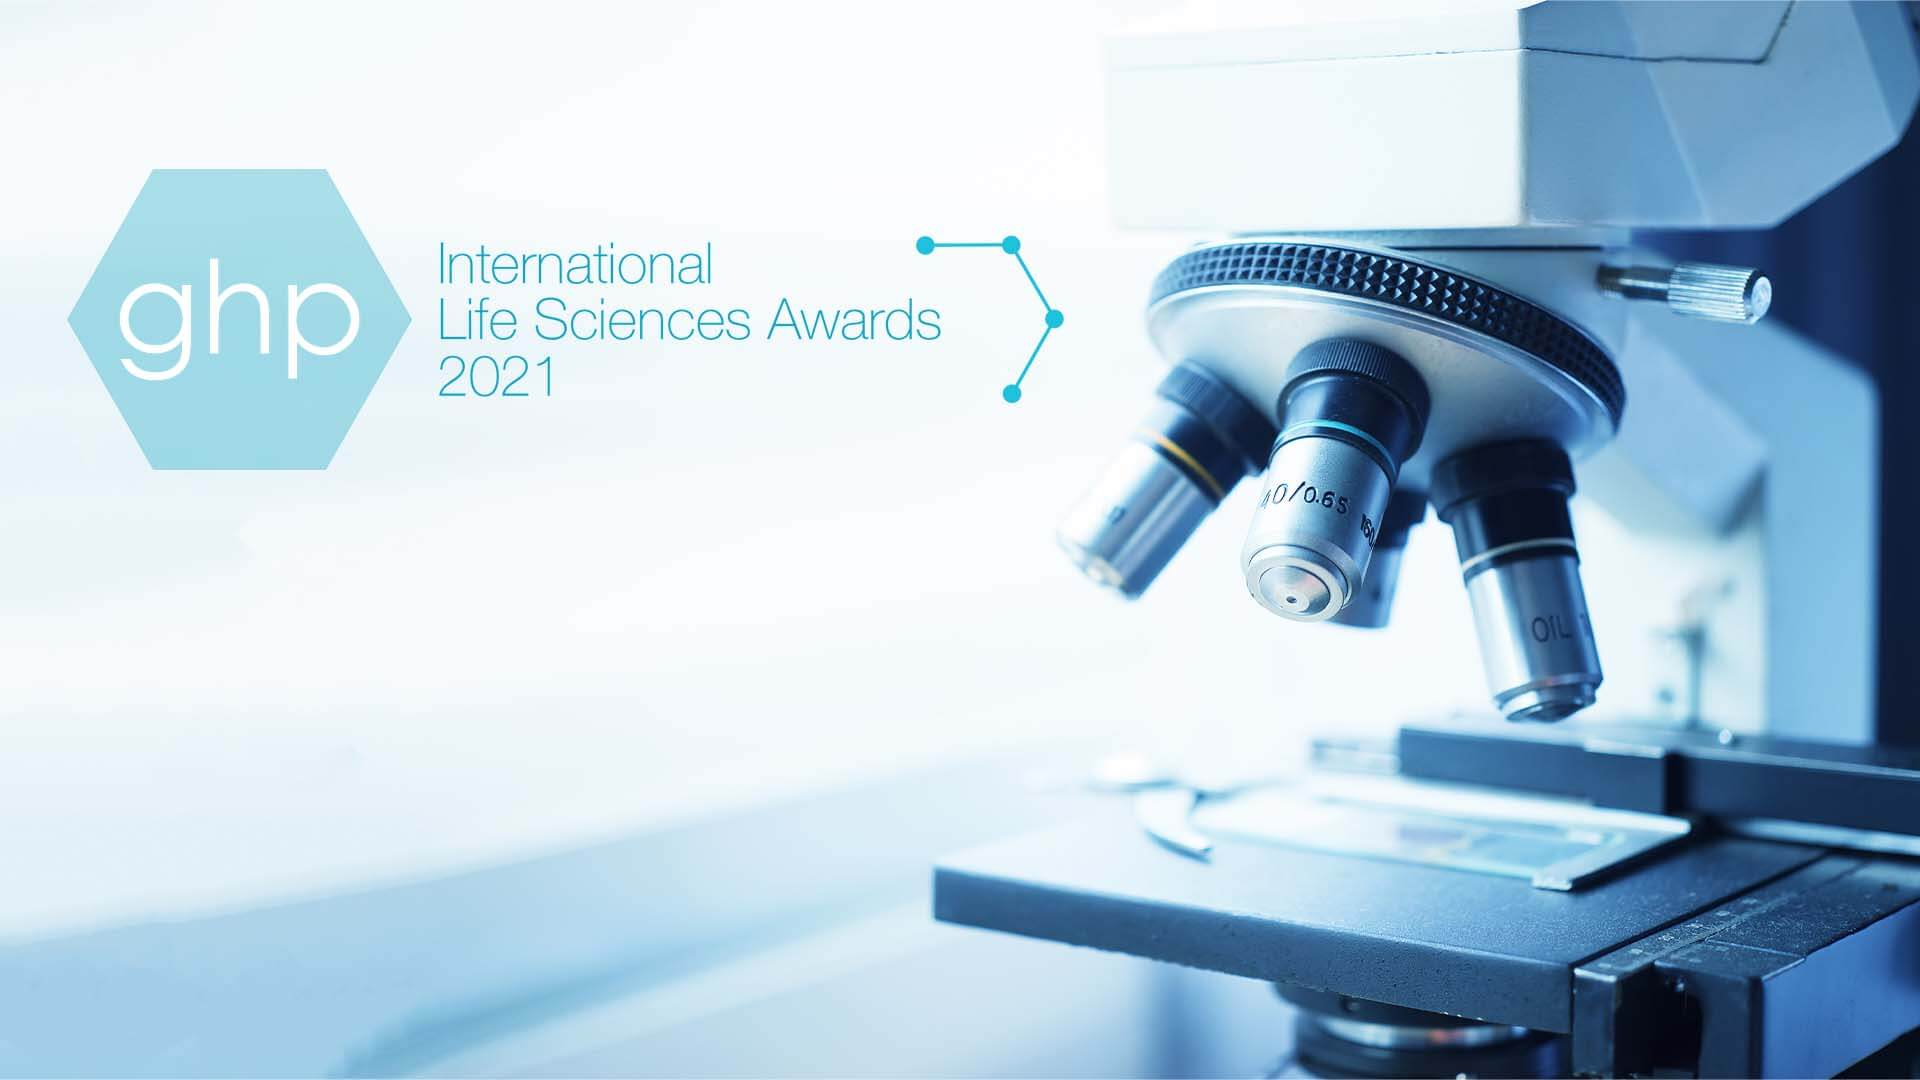 GHP Announces the Winners of the International Life Sciences Awards 2021